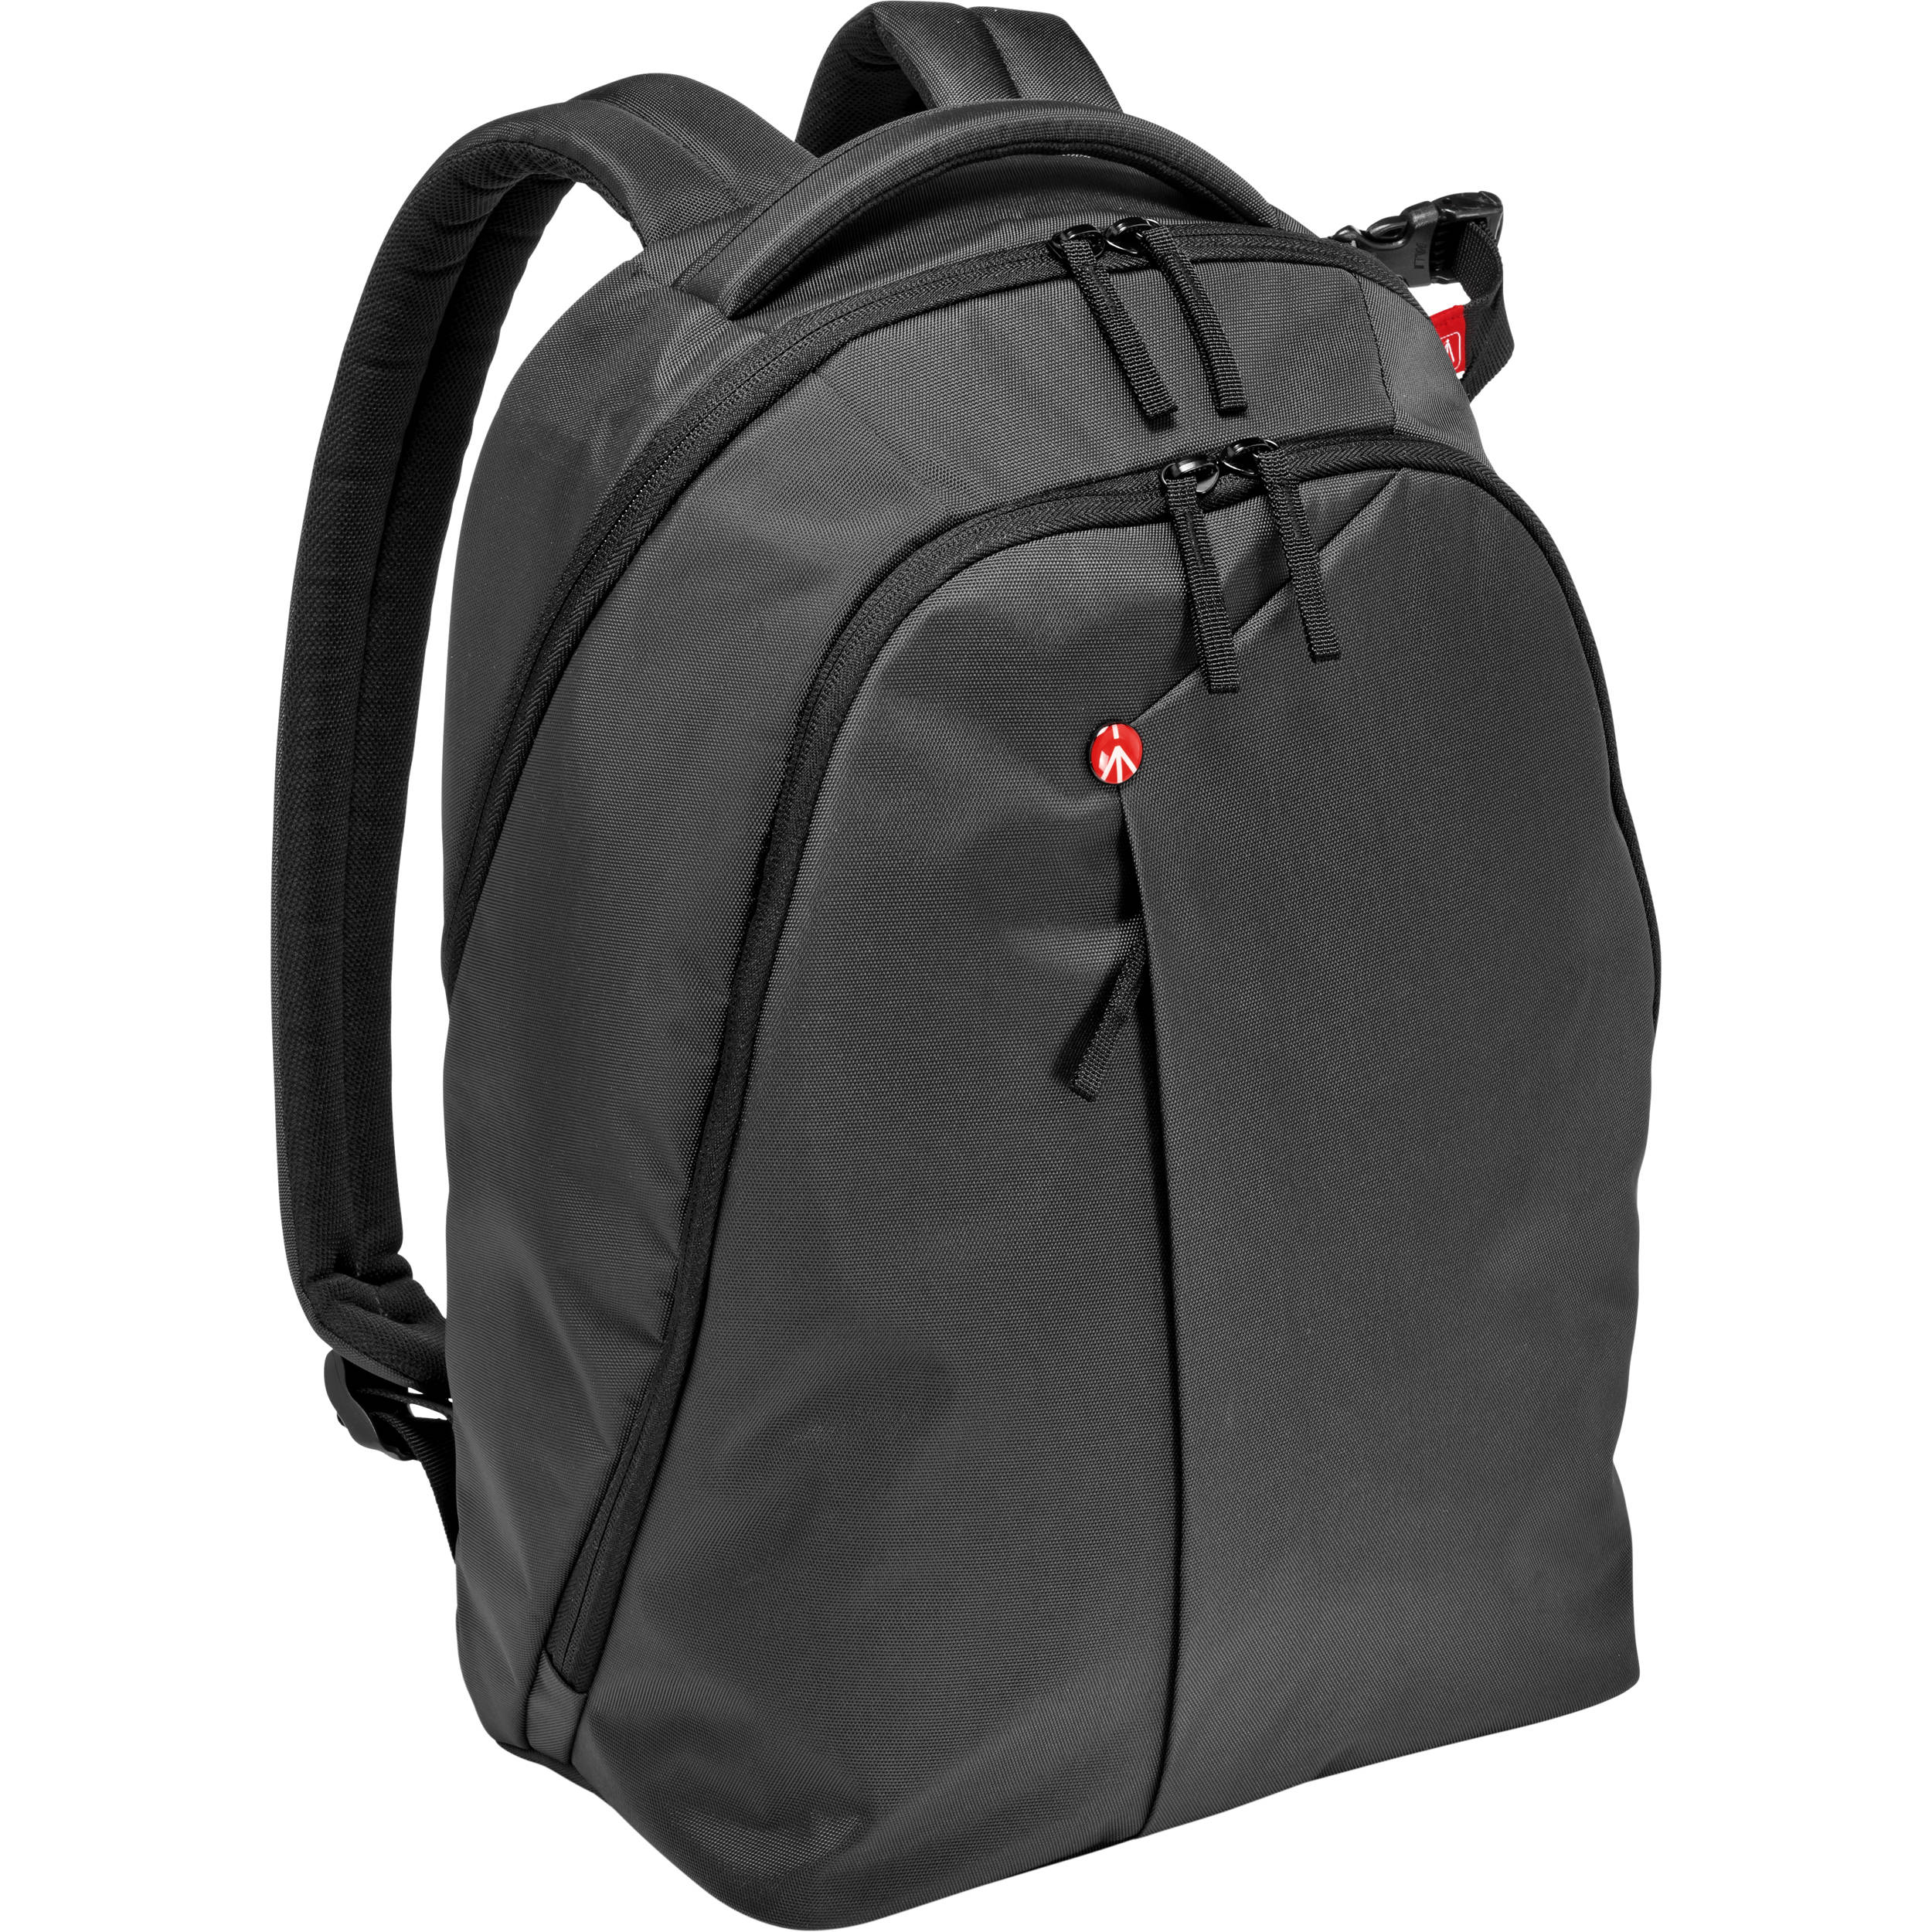 Manfrotto Backpack (Gray) MB NX-BP-VGY B&H Photo Video